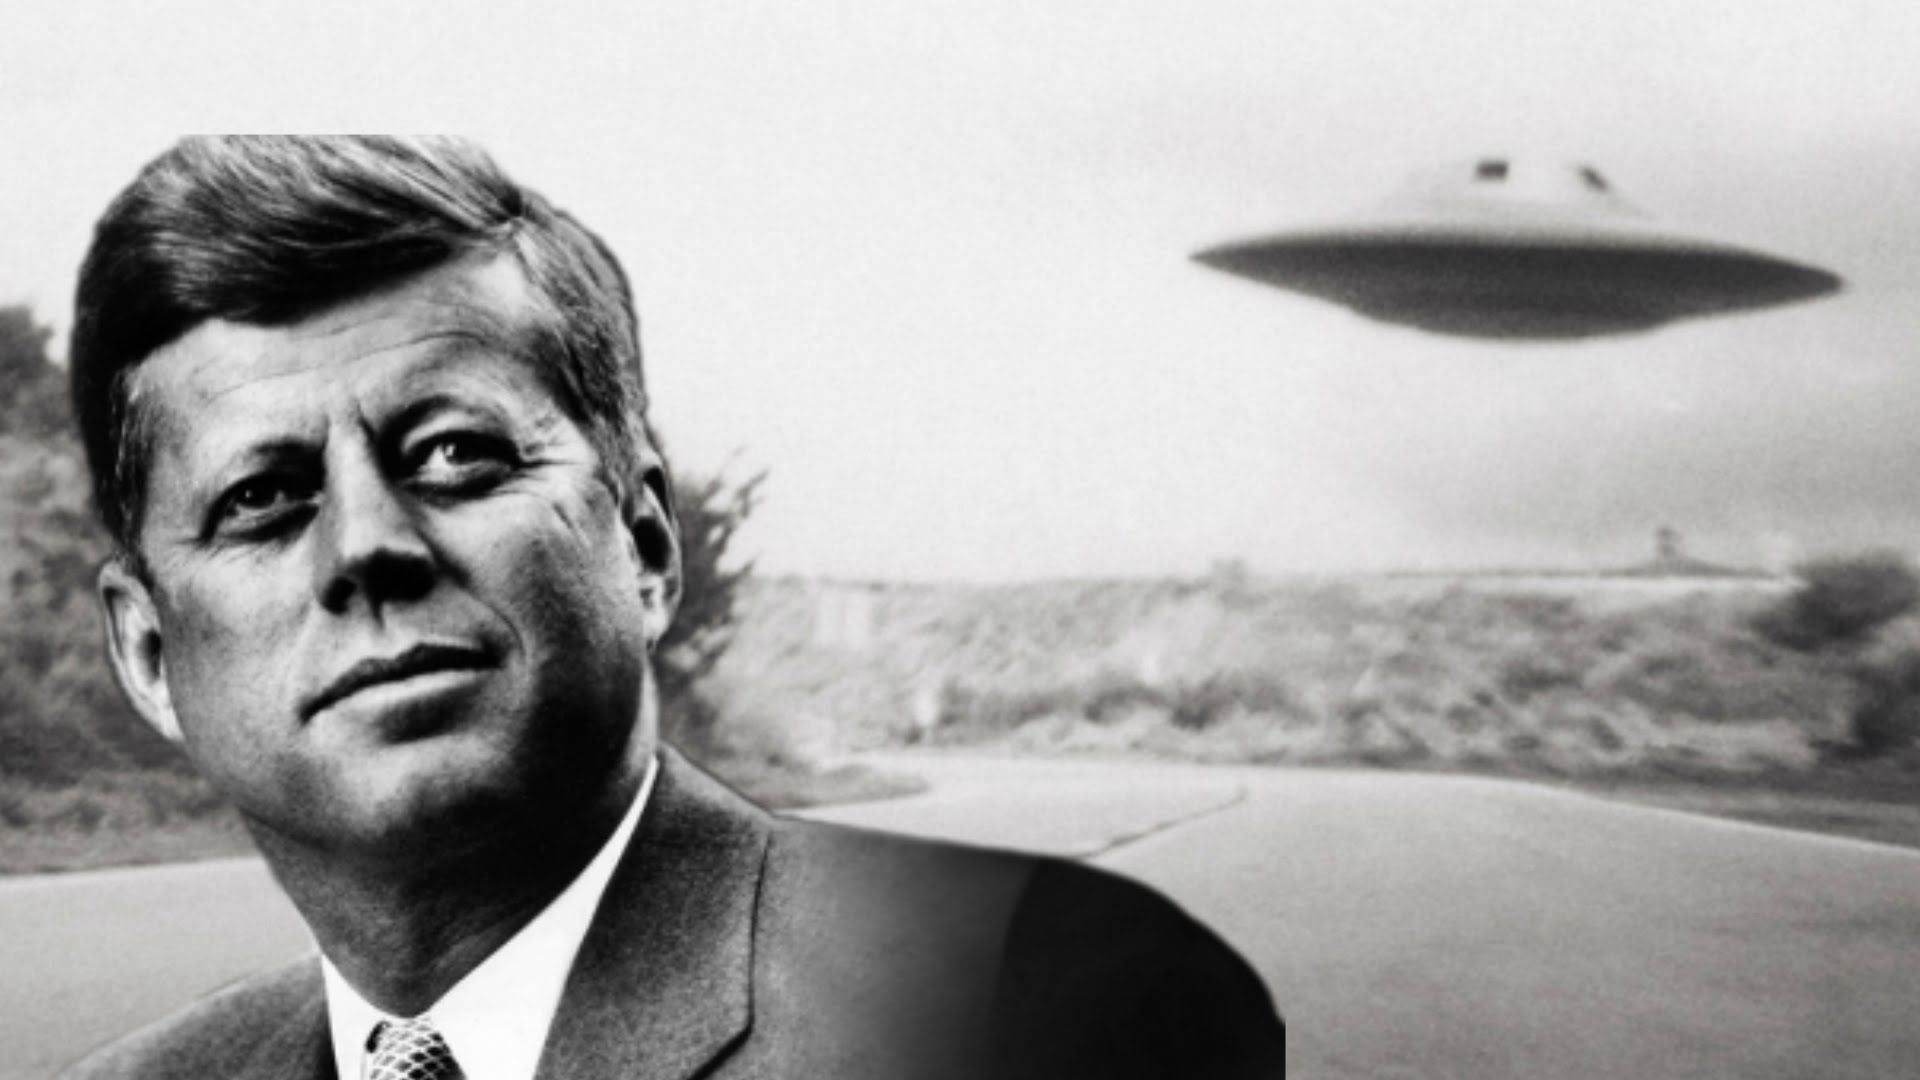 Was the President killed for his insider knowledge about extraterrestrial beings?